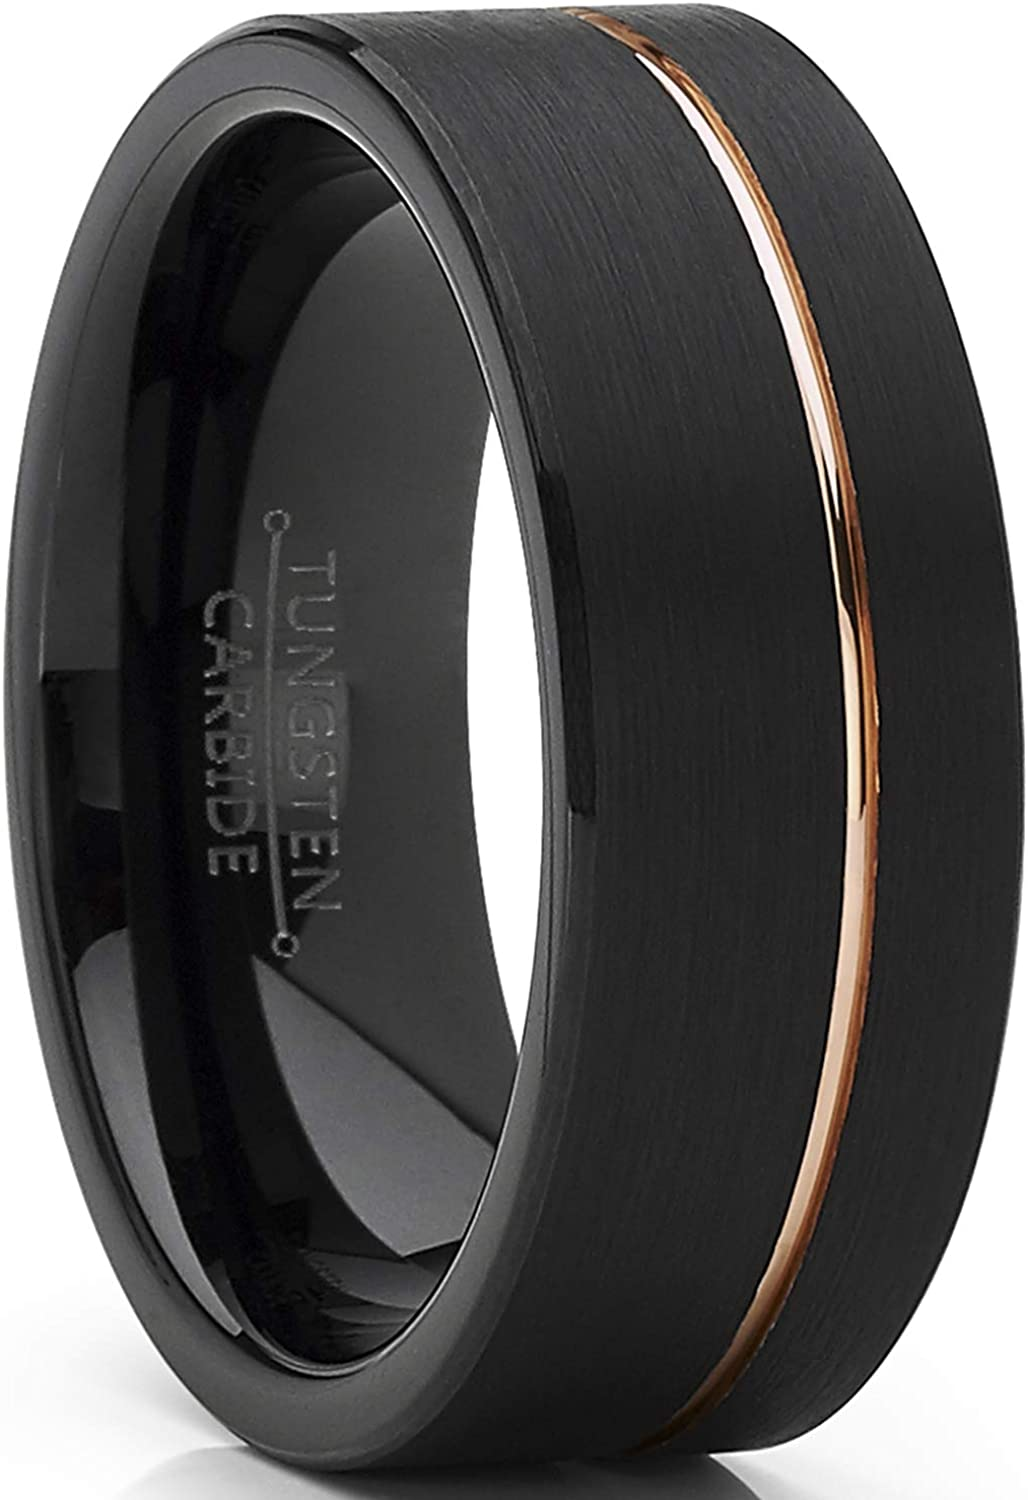 Metal Masters Co. Men's Black Tungsten Carbide Ring Wedding Band with Rose Goldtone Groove 8mm